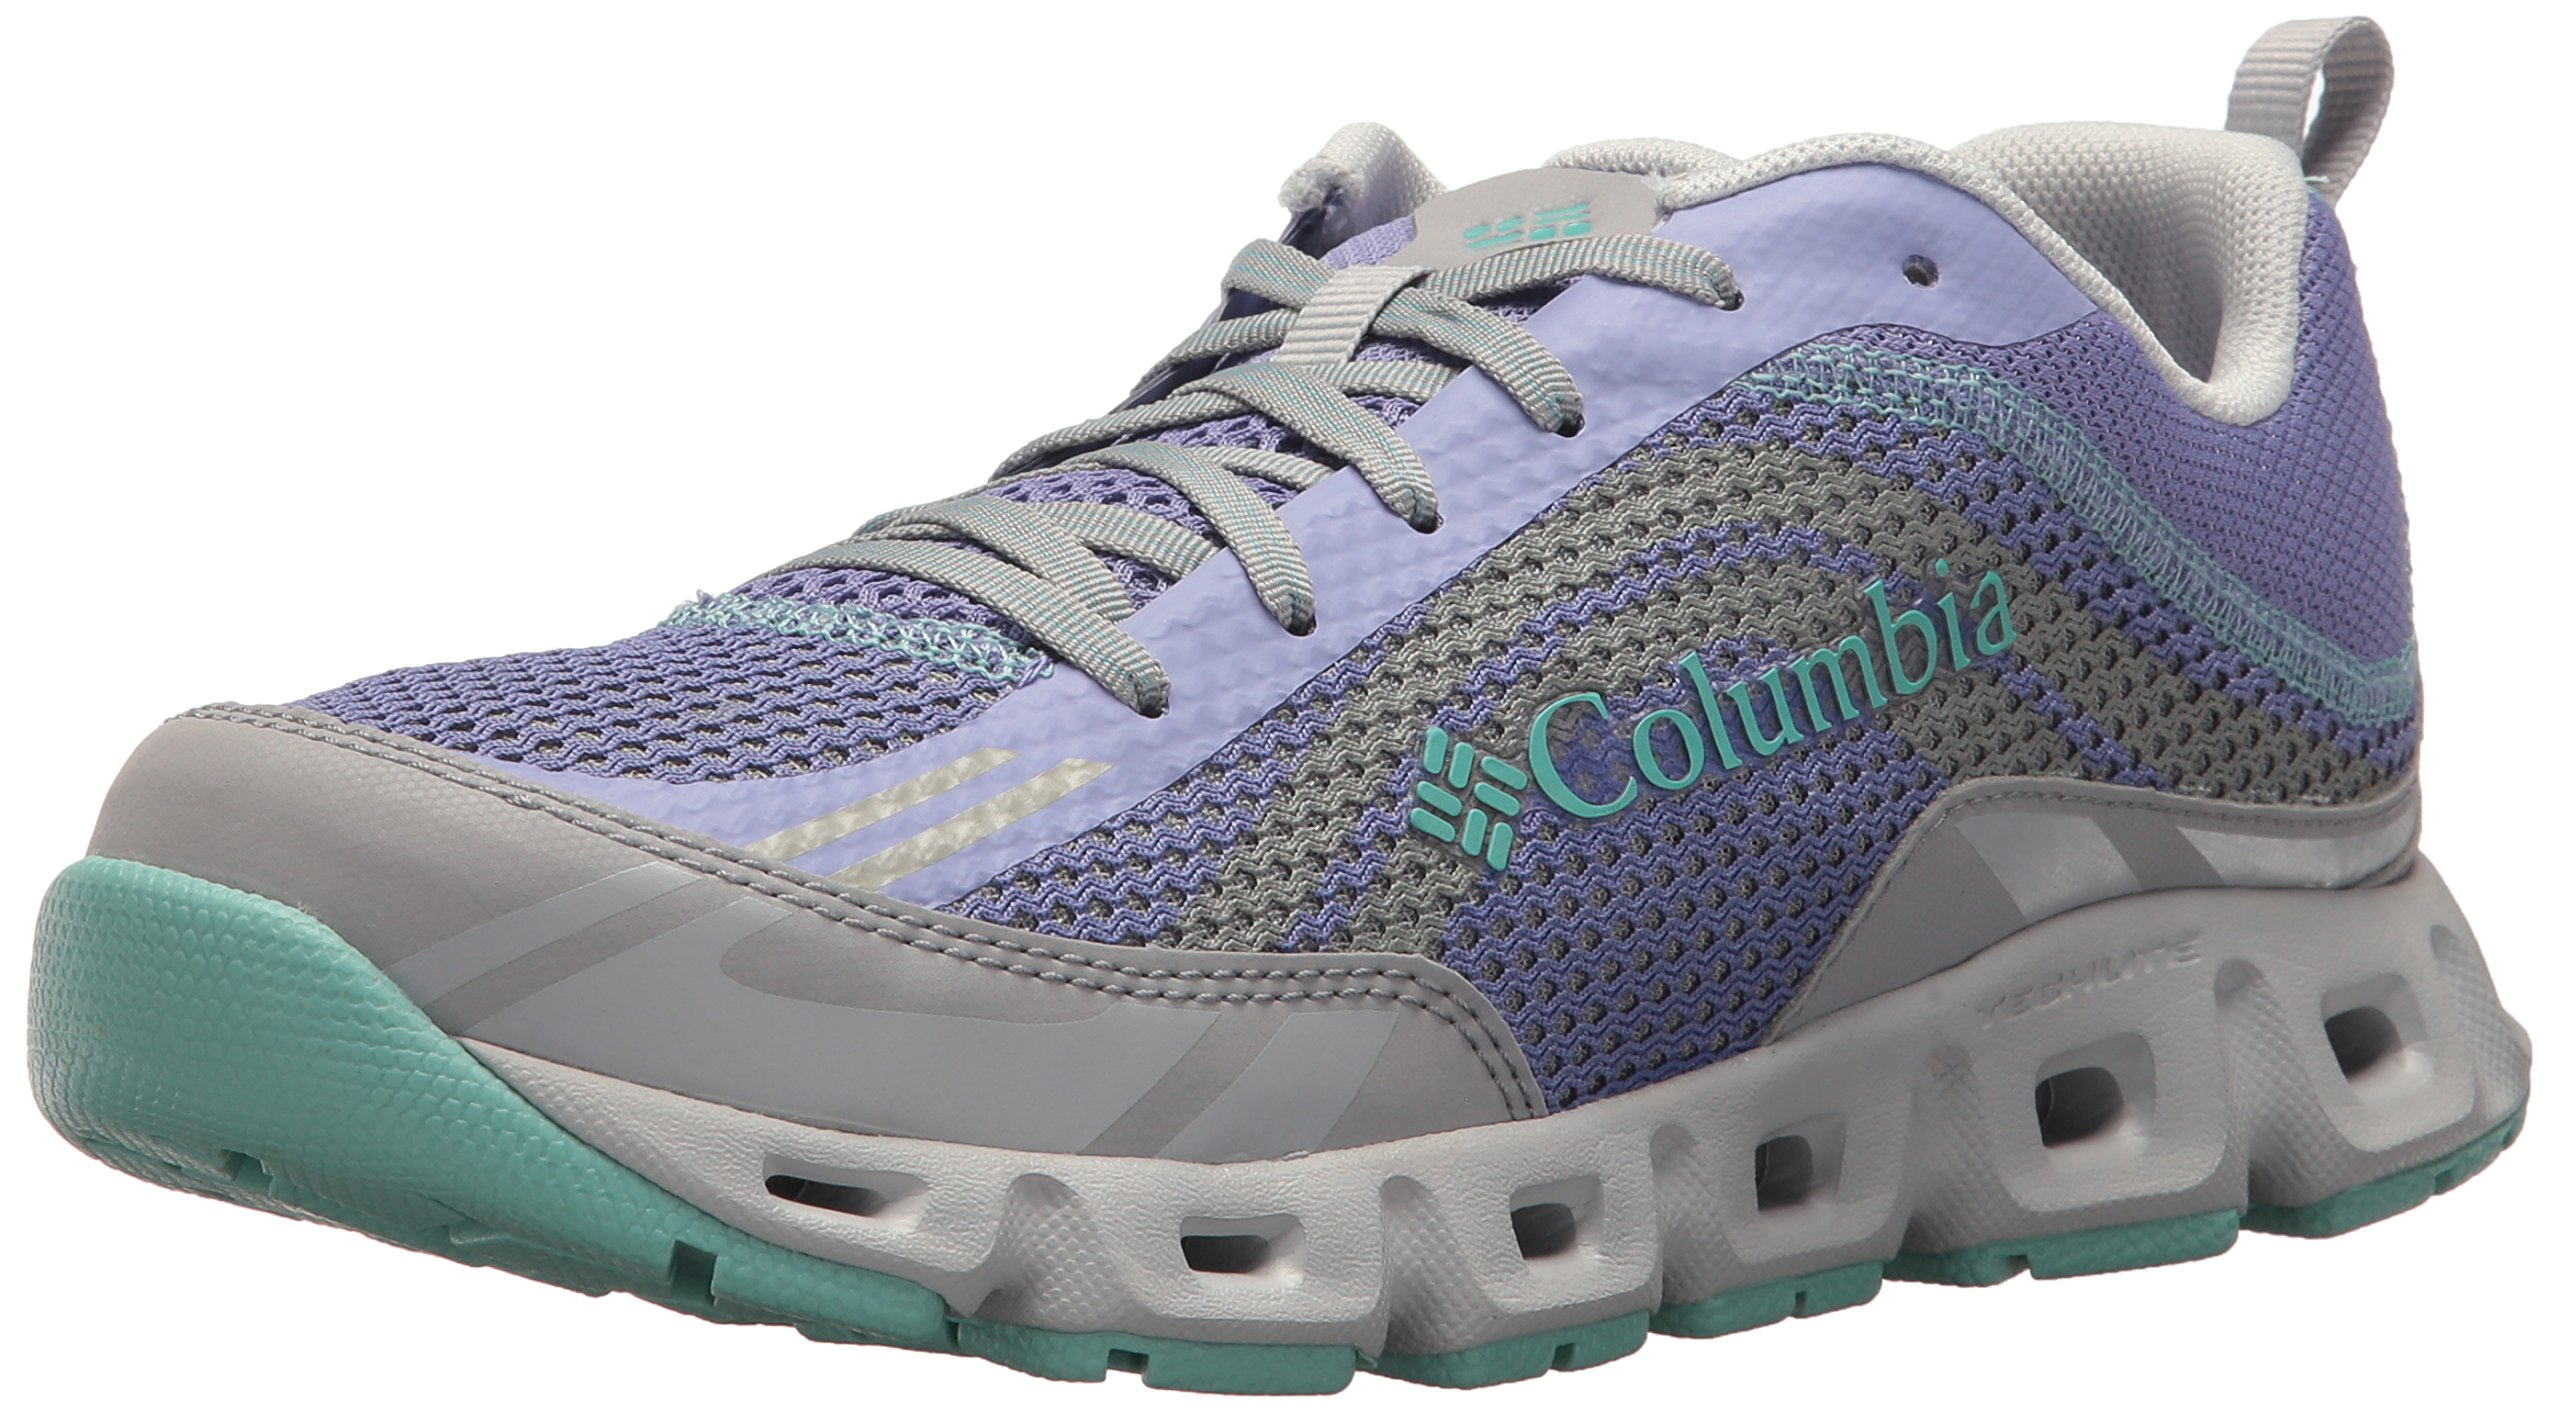 Columbia Women's Drainmaker IV Water Shoe, Fairytale, Aquarium, 8 Regular US by Columbia